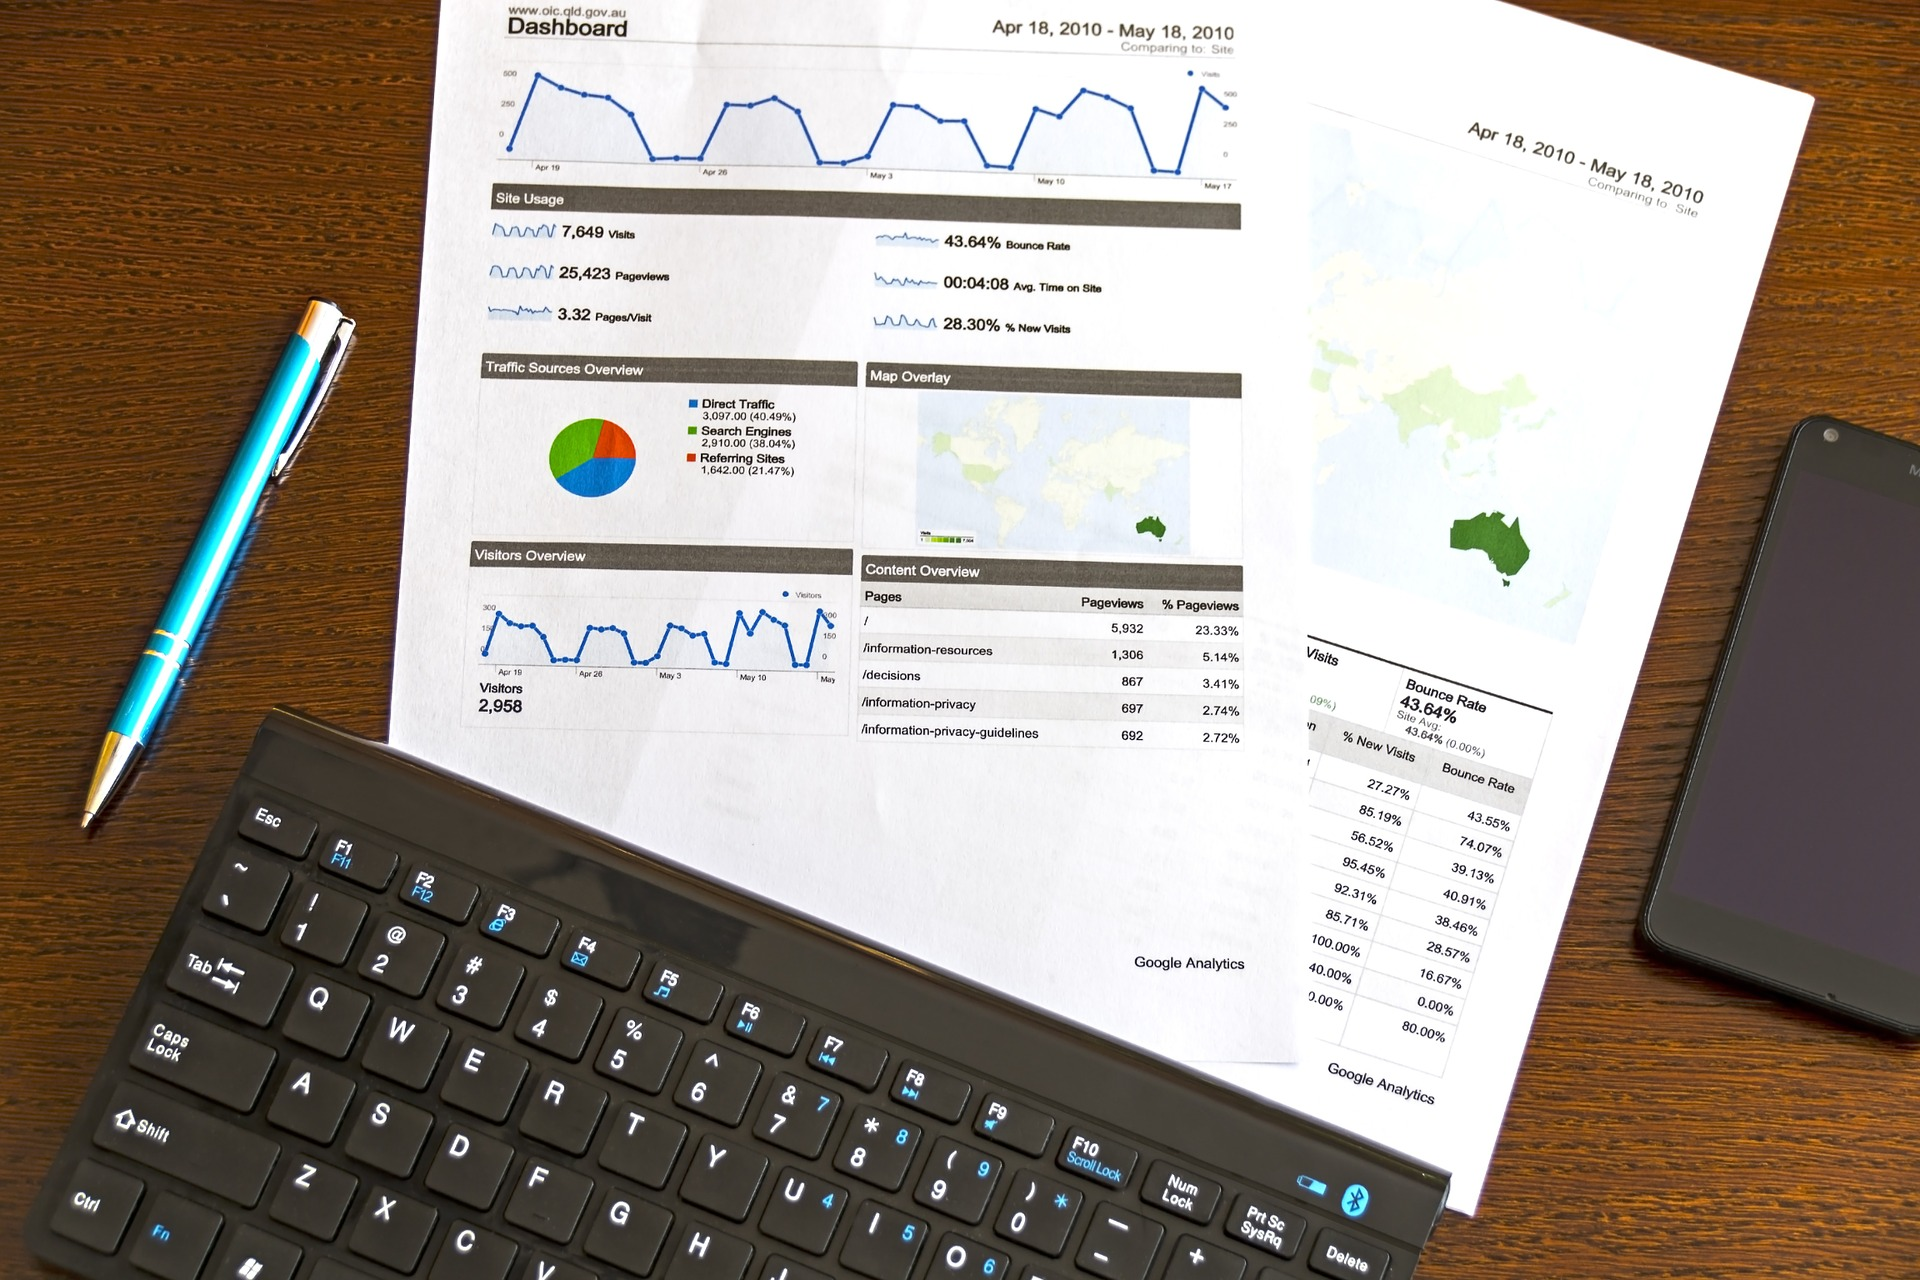 Can a small business use Adwords successfully?